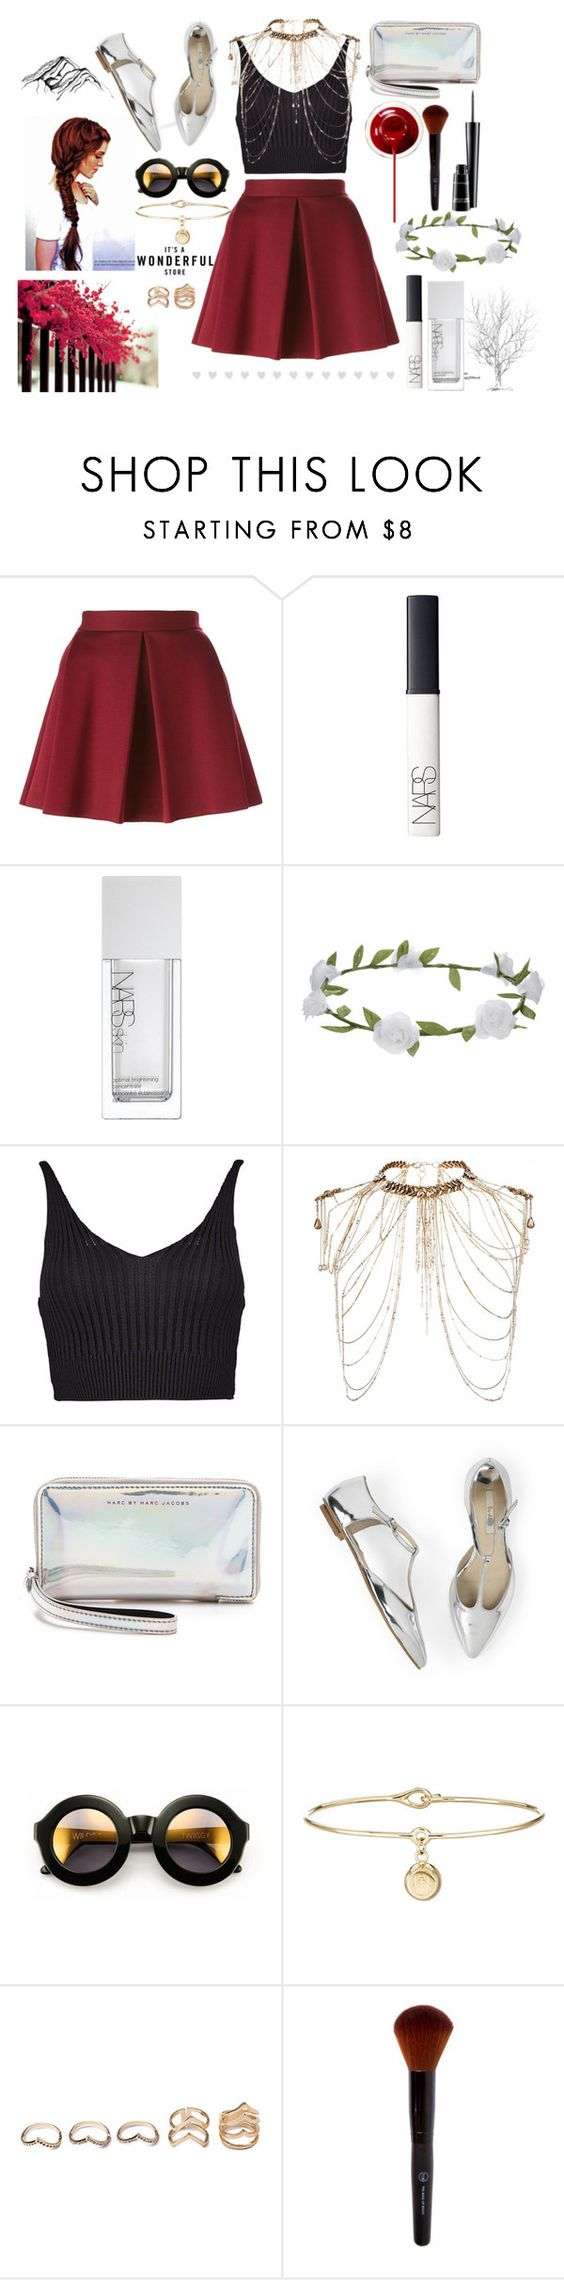 """untitled#122"" by fancywolrd ❤ liked on Polyvore featuring P.A.R.O.S.H., NARS Cosmetics, Accessorize, Boohoo, Erickson Beamon, Marc by Marc Jacobs, Wildfox, Aurélie Bidermann, Forever 21 and MAC Cosmetics"